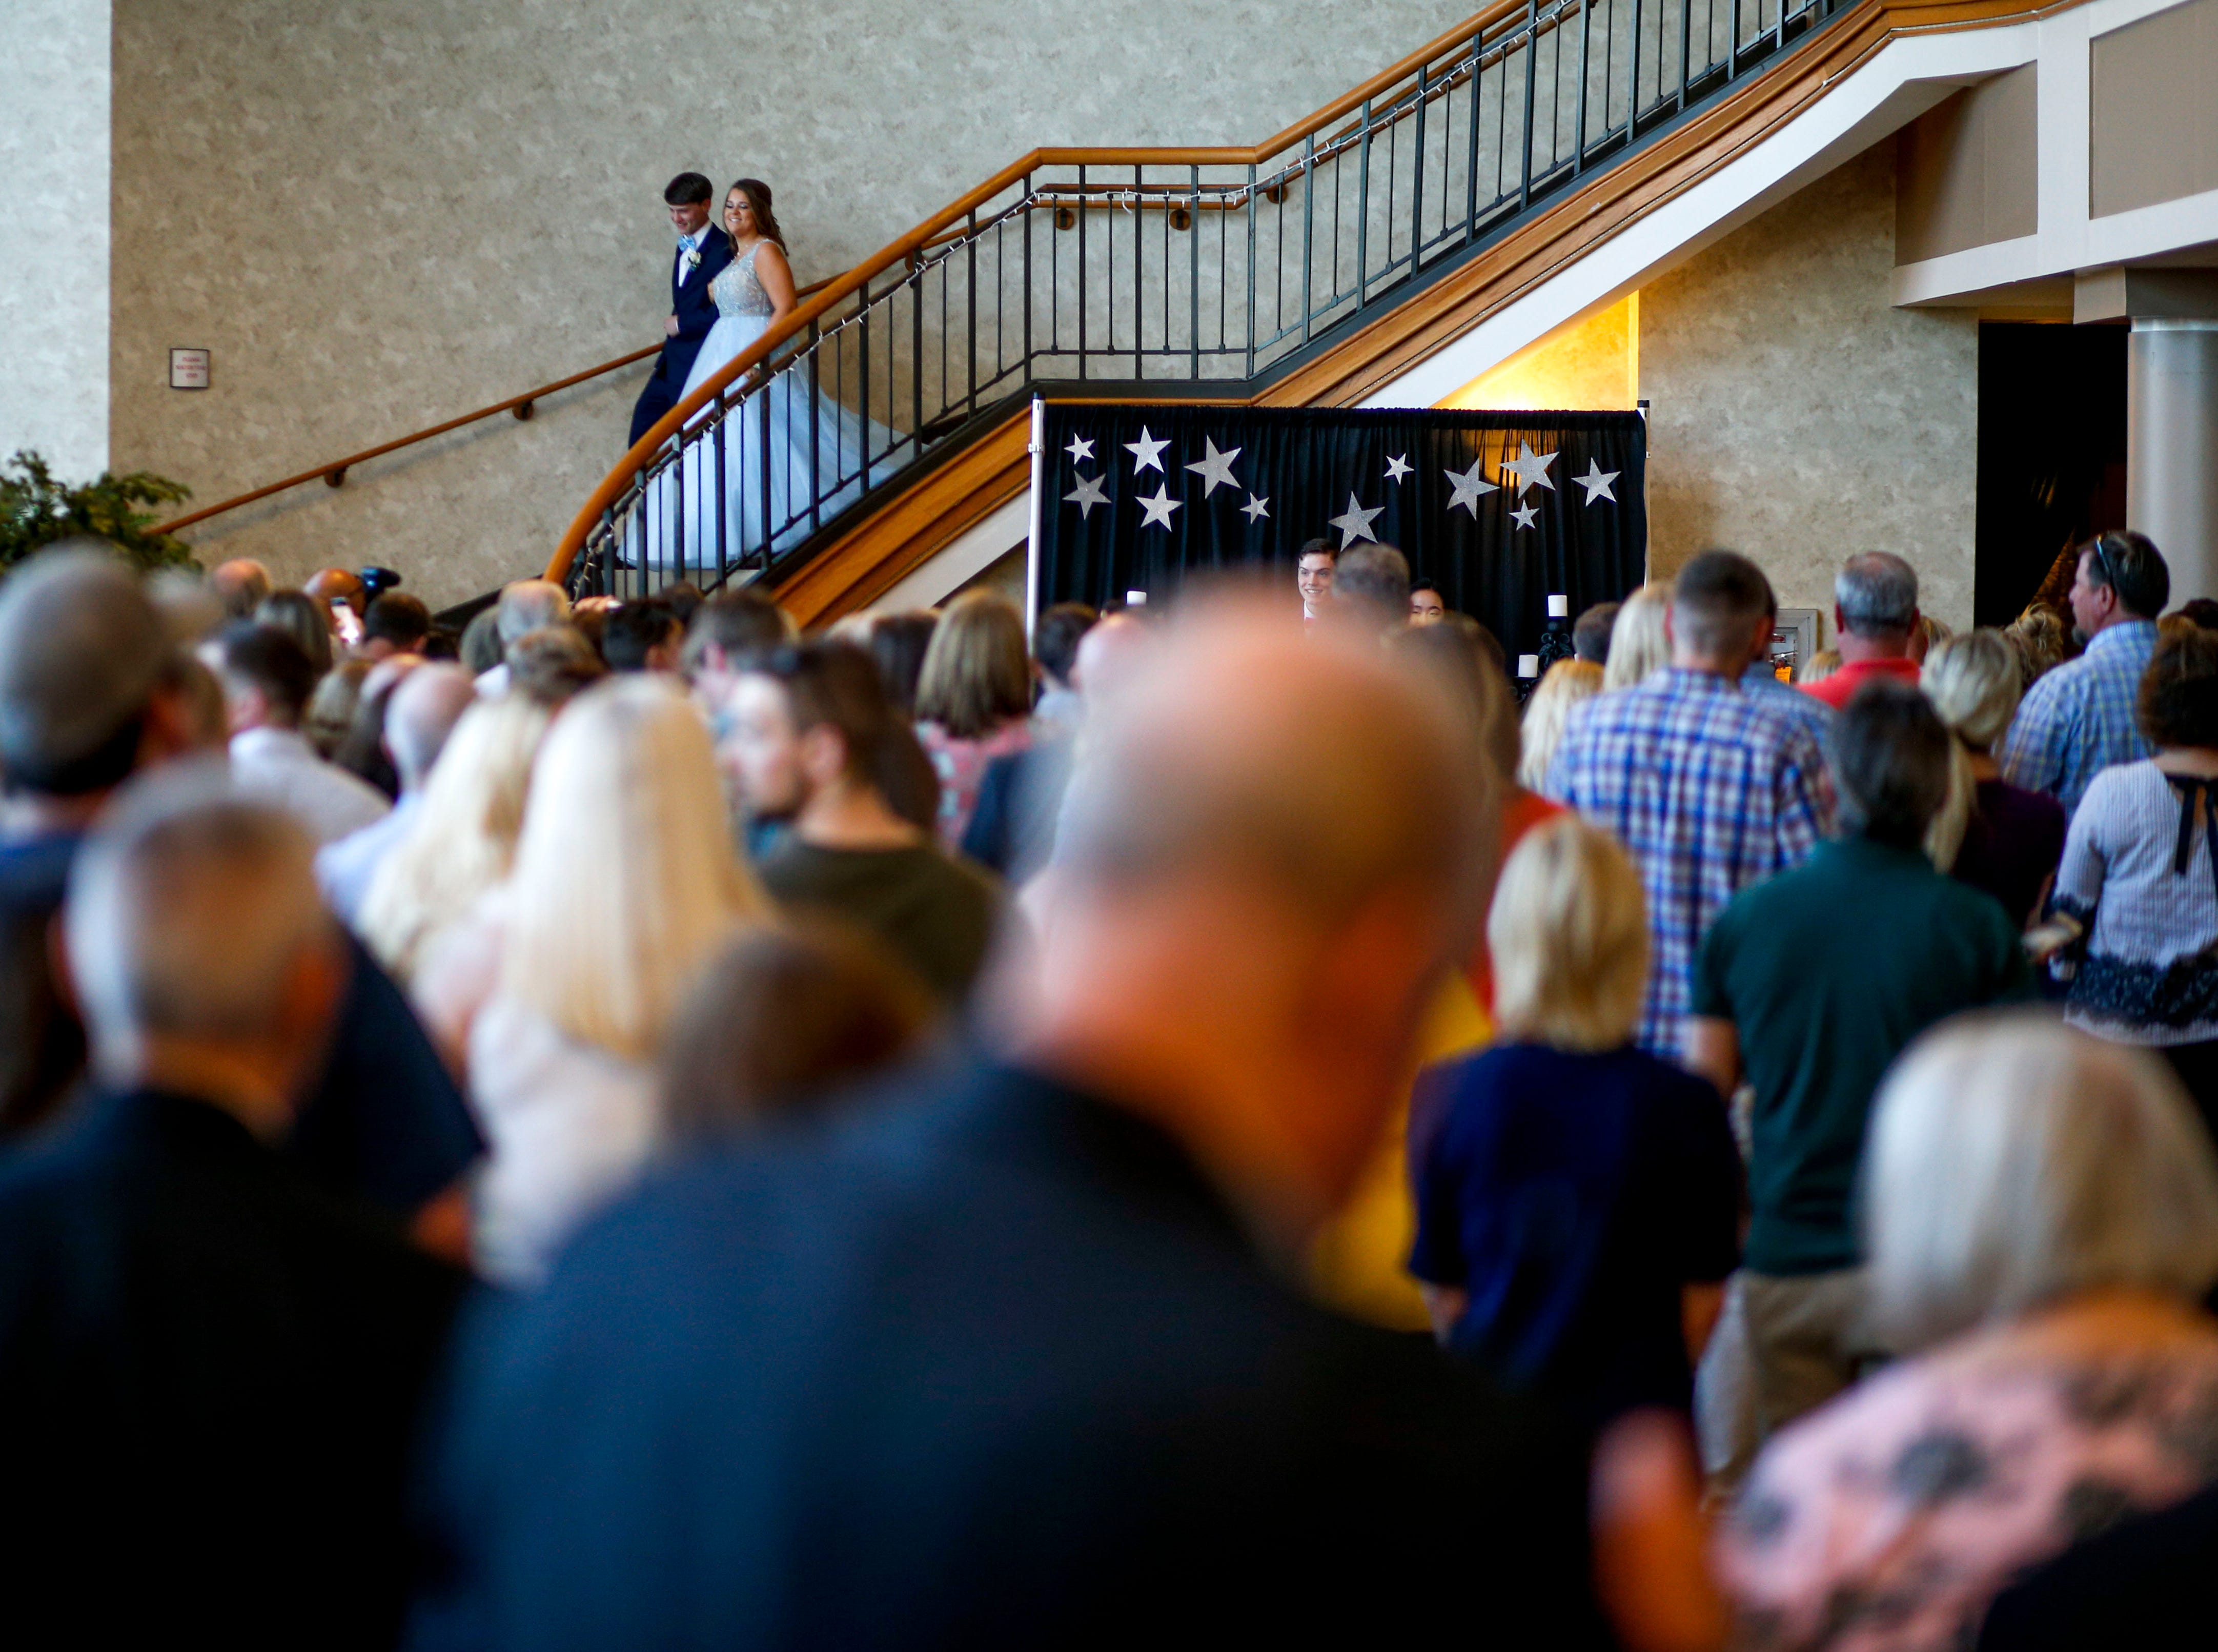 Students descend a staircase in front of friends and family during Clarksville Academy's 2019 prom at The Bruce Convention Center in Hopkinsville, Ky., on Saturday, April 6, 2019.